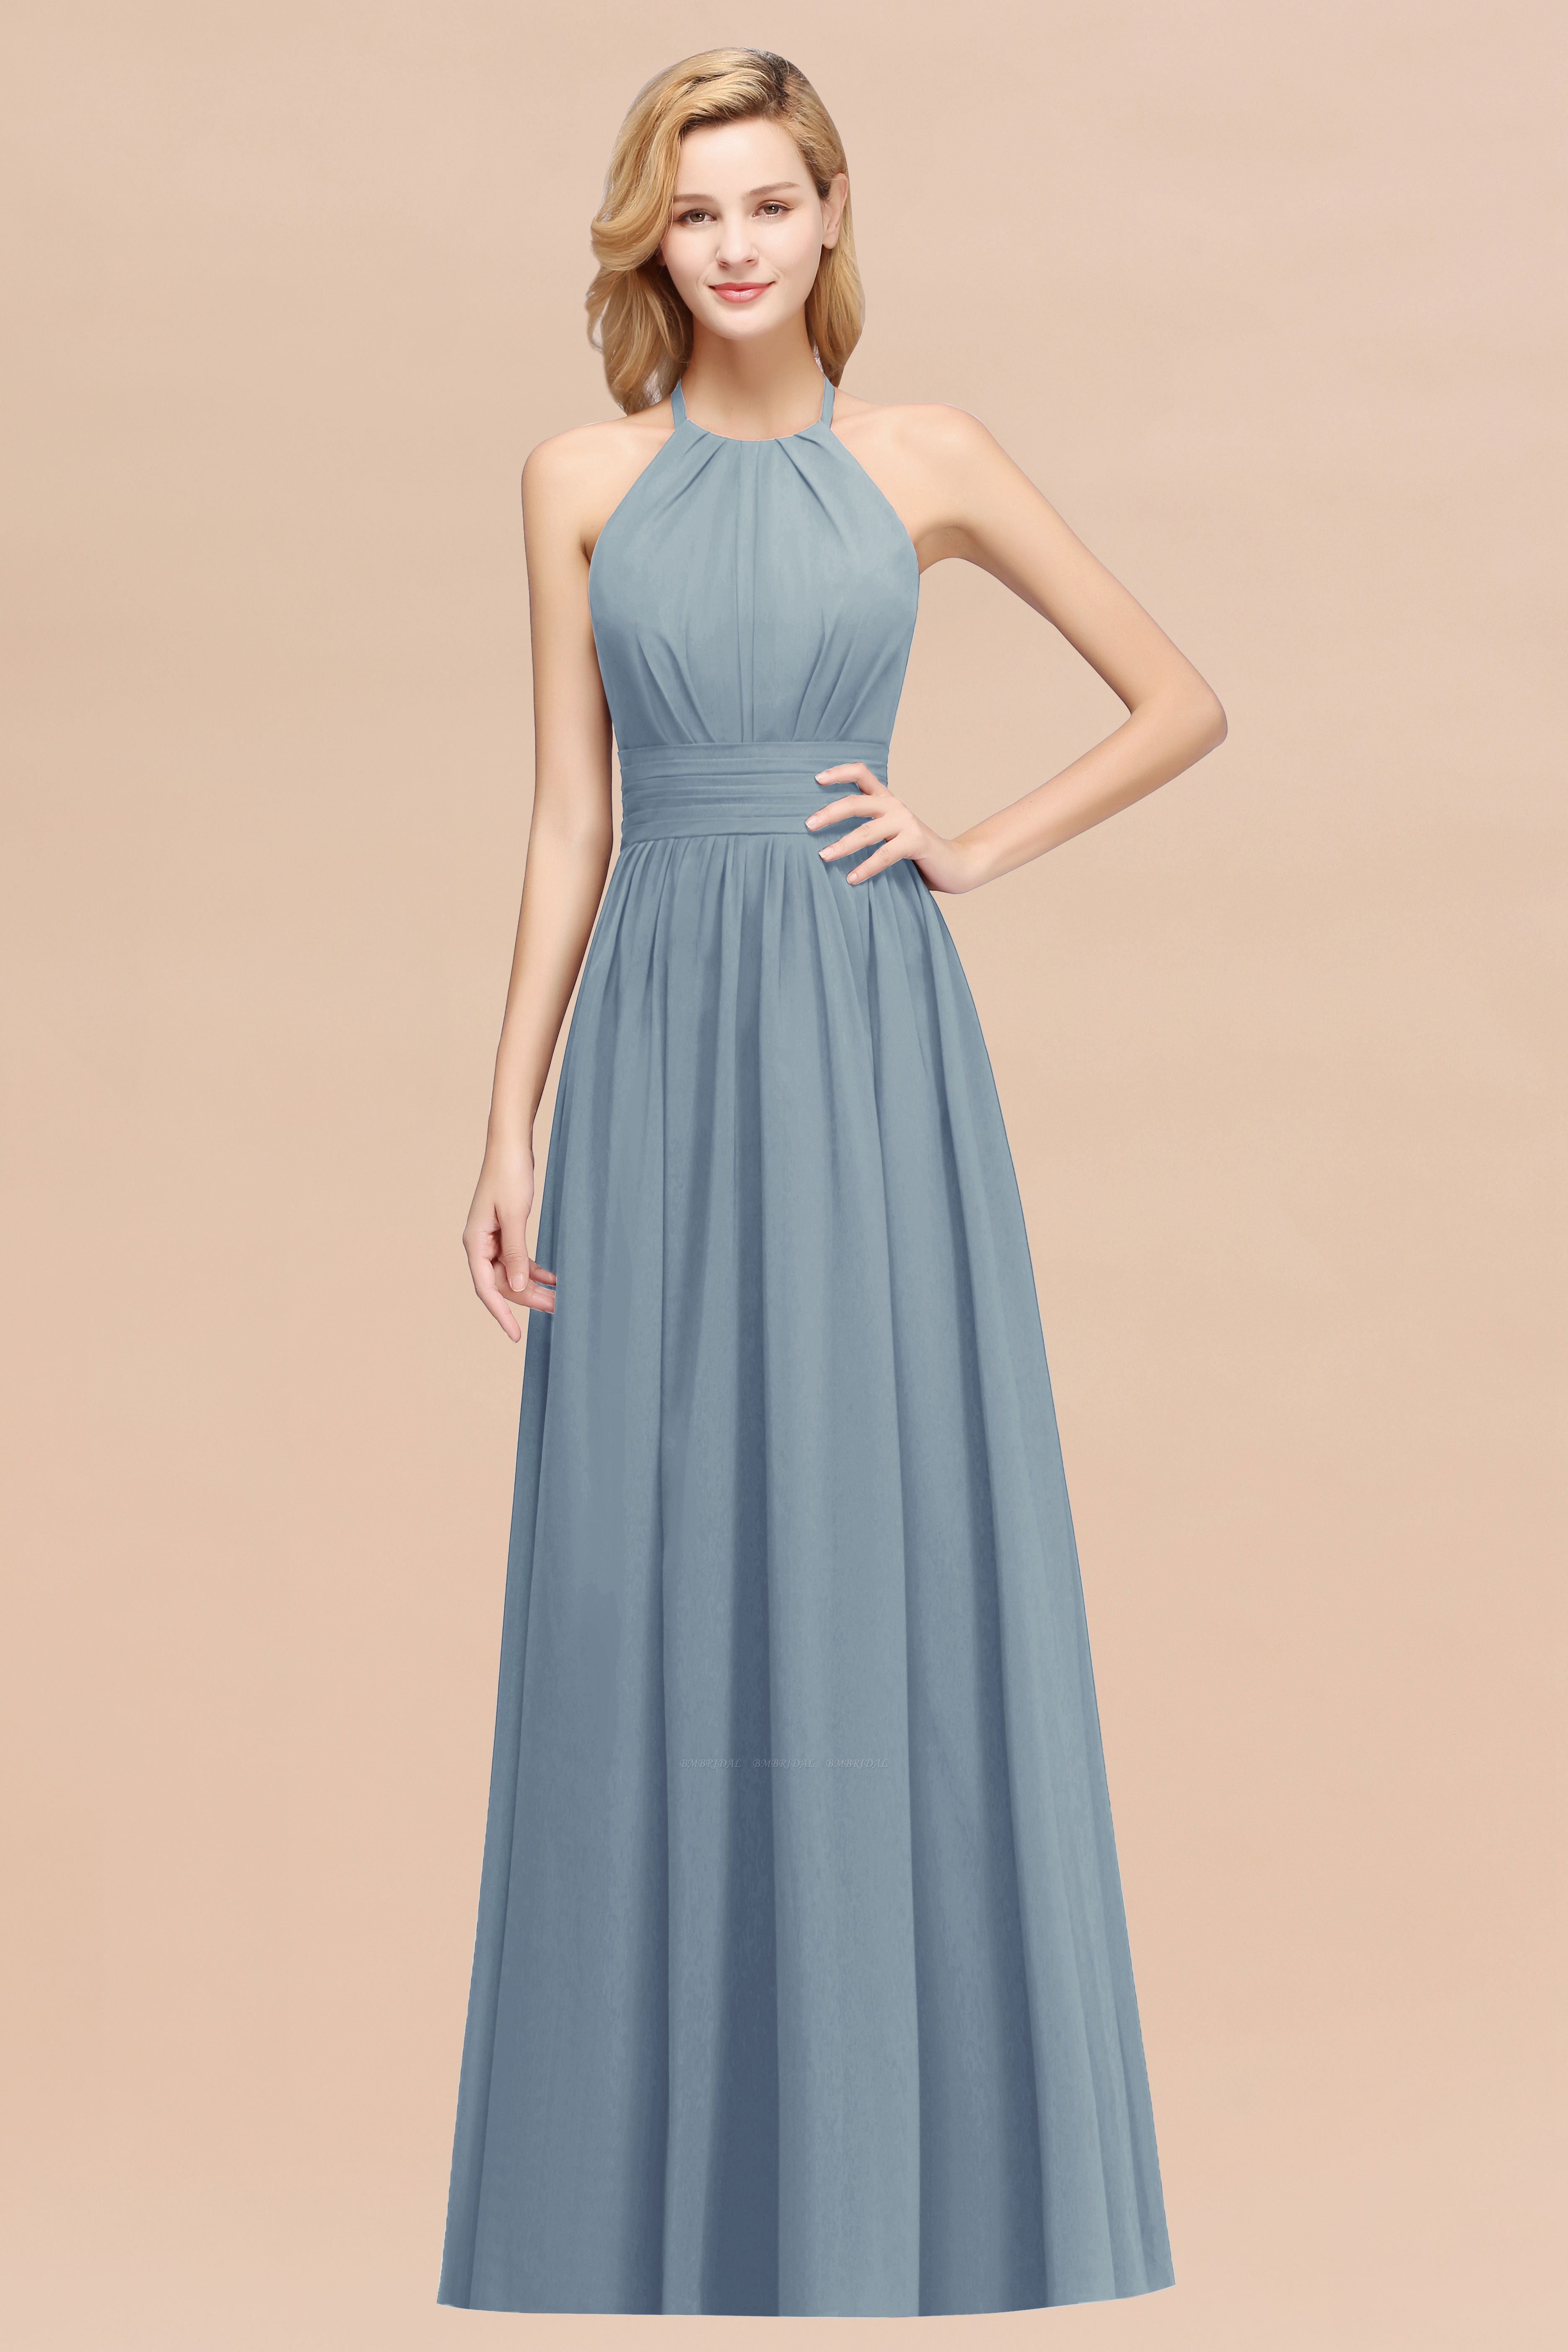 Elegant High-Neck Halter Long Affordable Bridesmaid Dresses with Ruffles